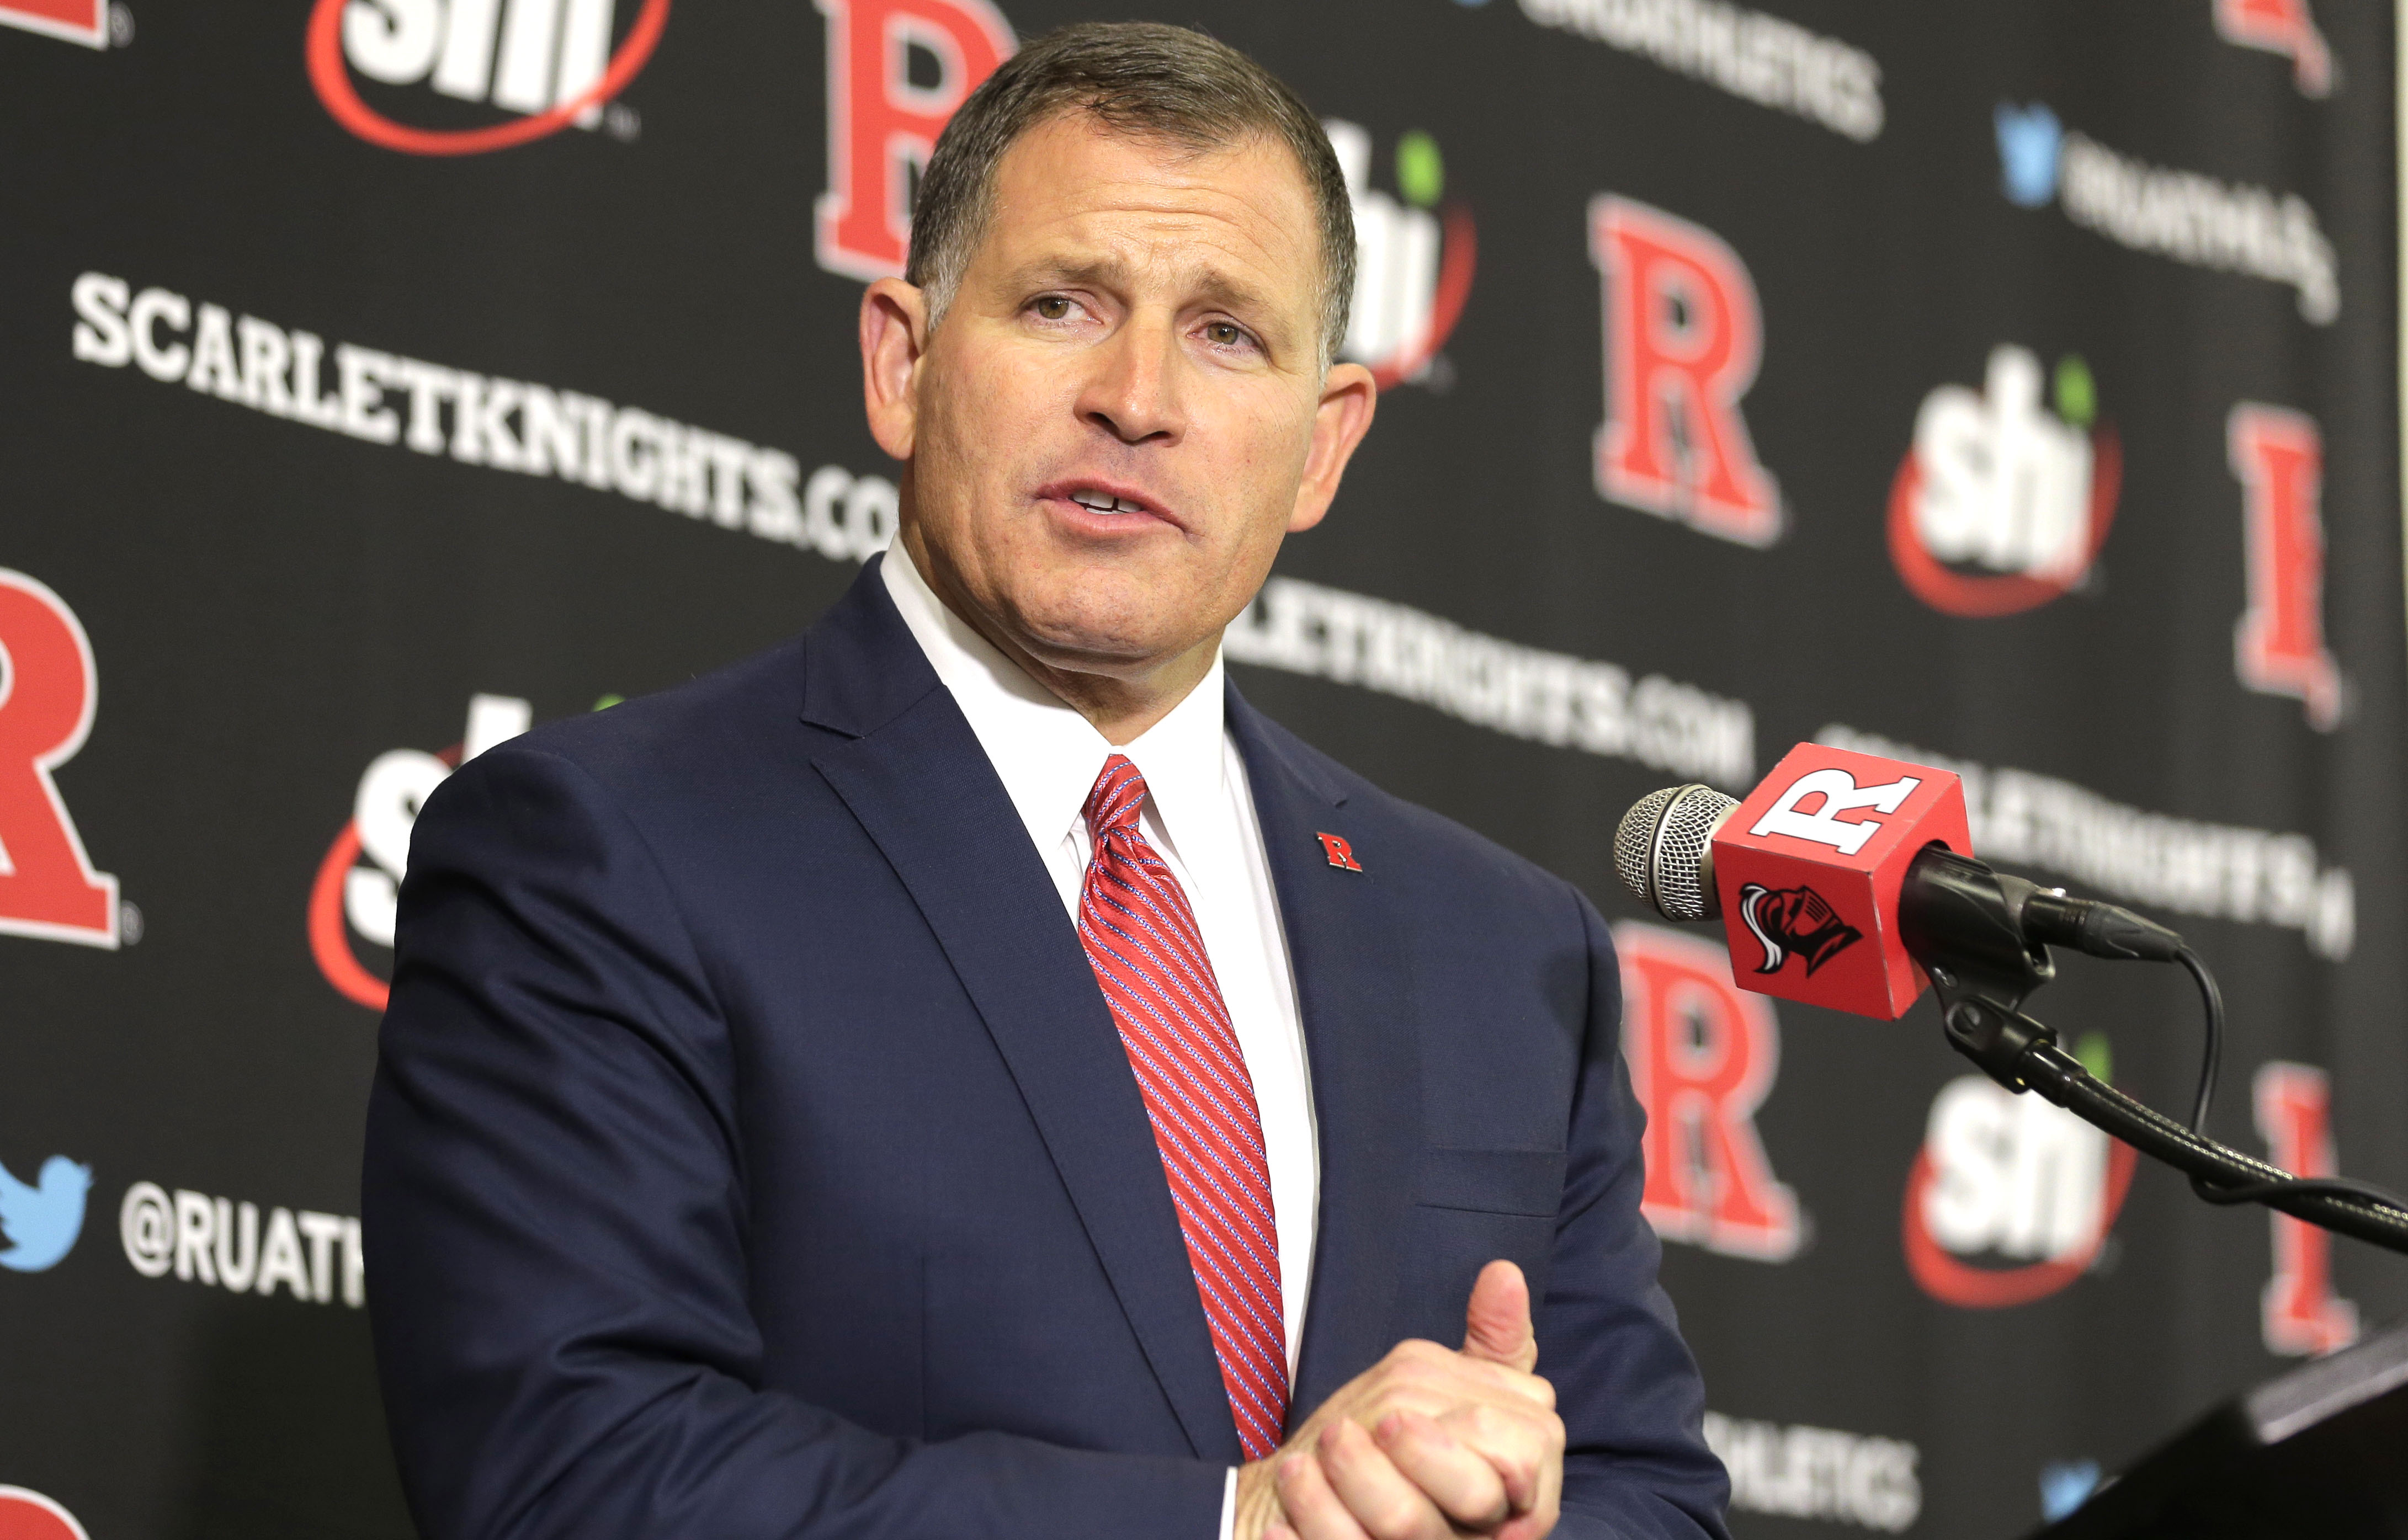 Greg Schiano looks to use coronavirus hiatus to Rutgers' advantage